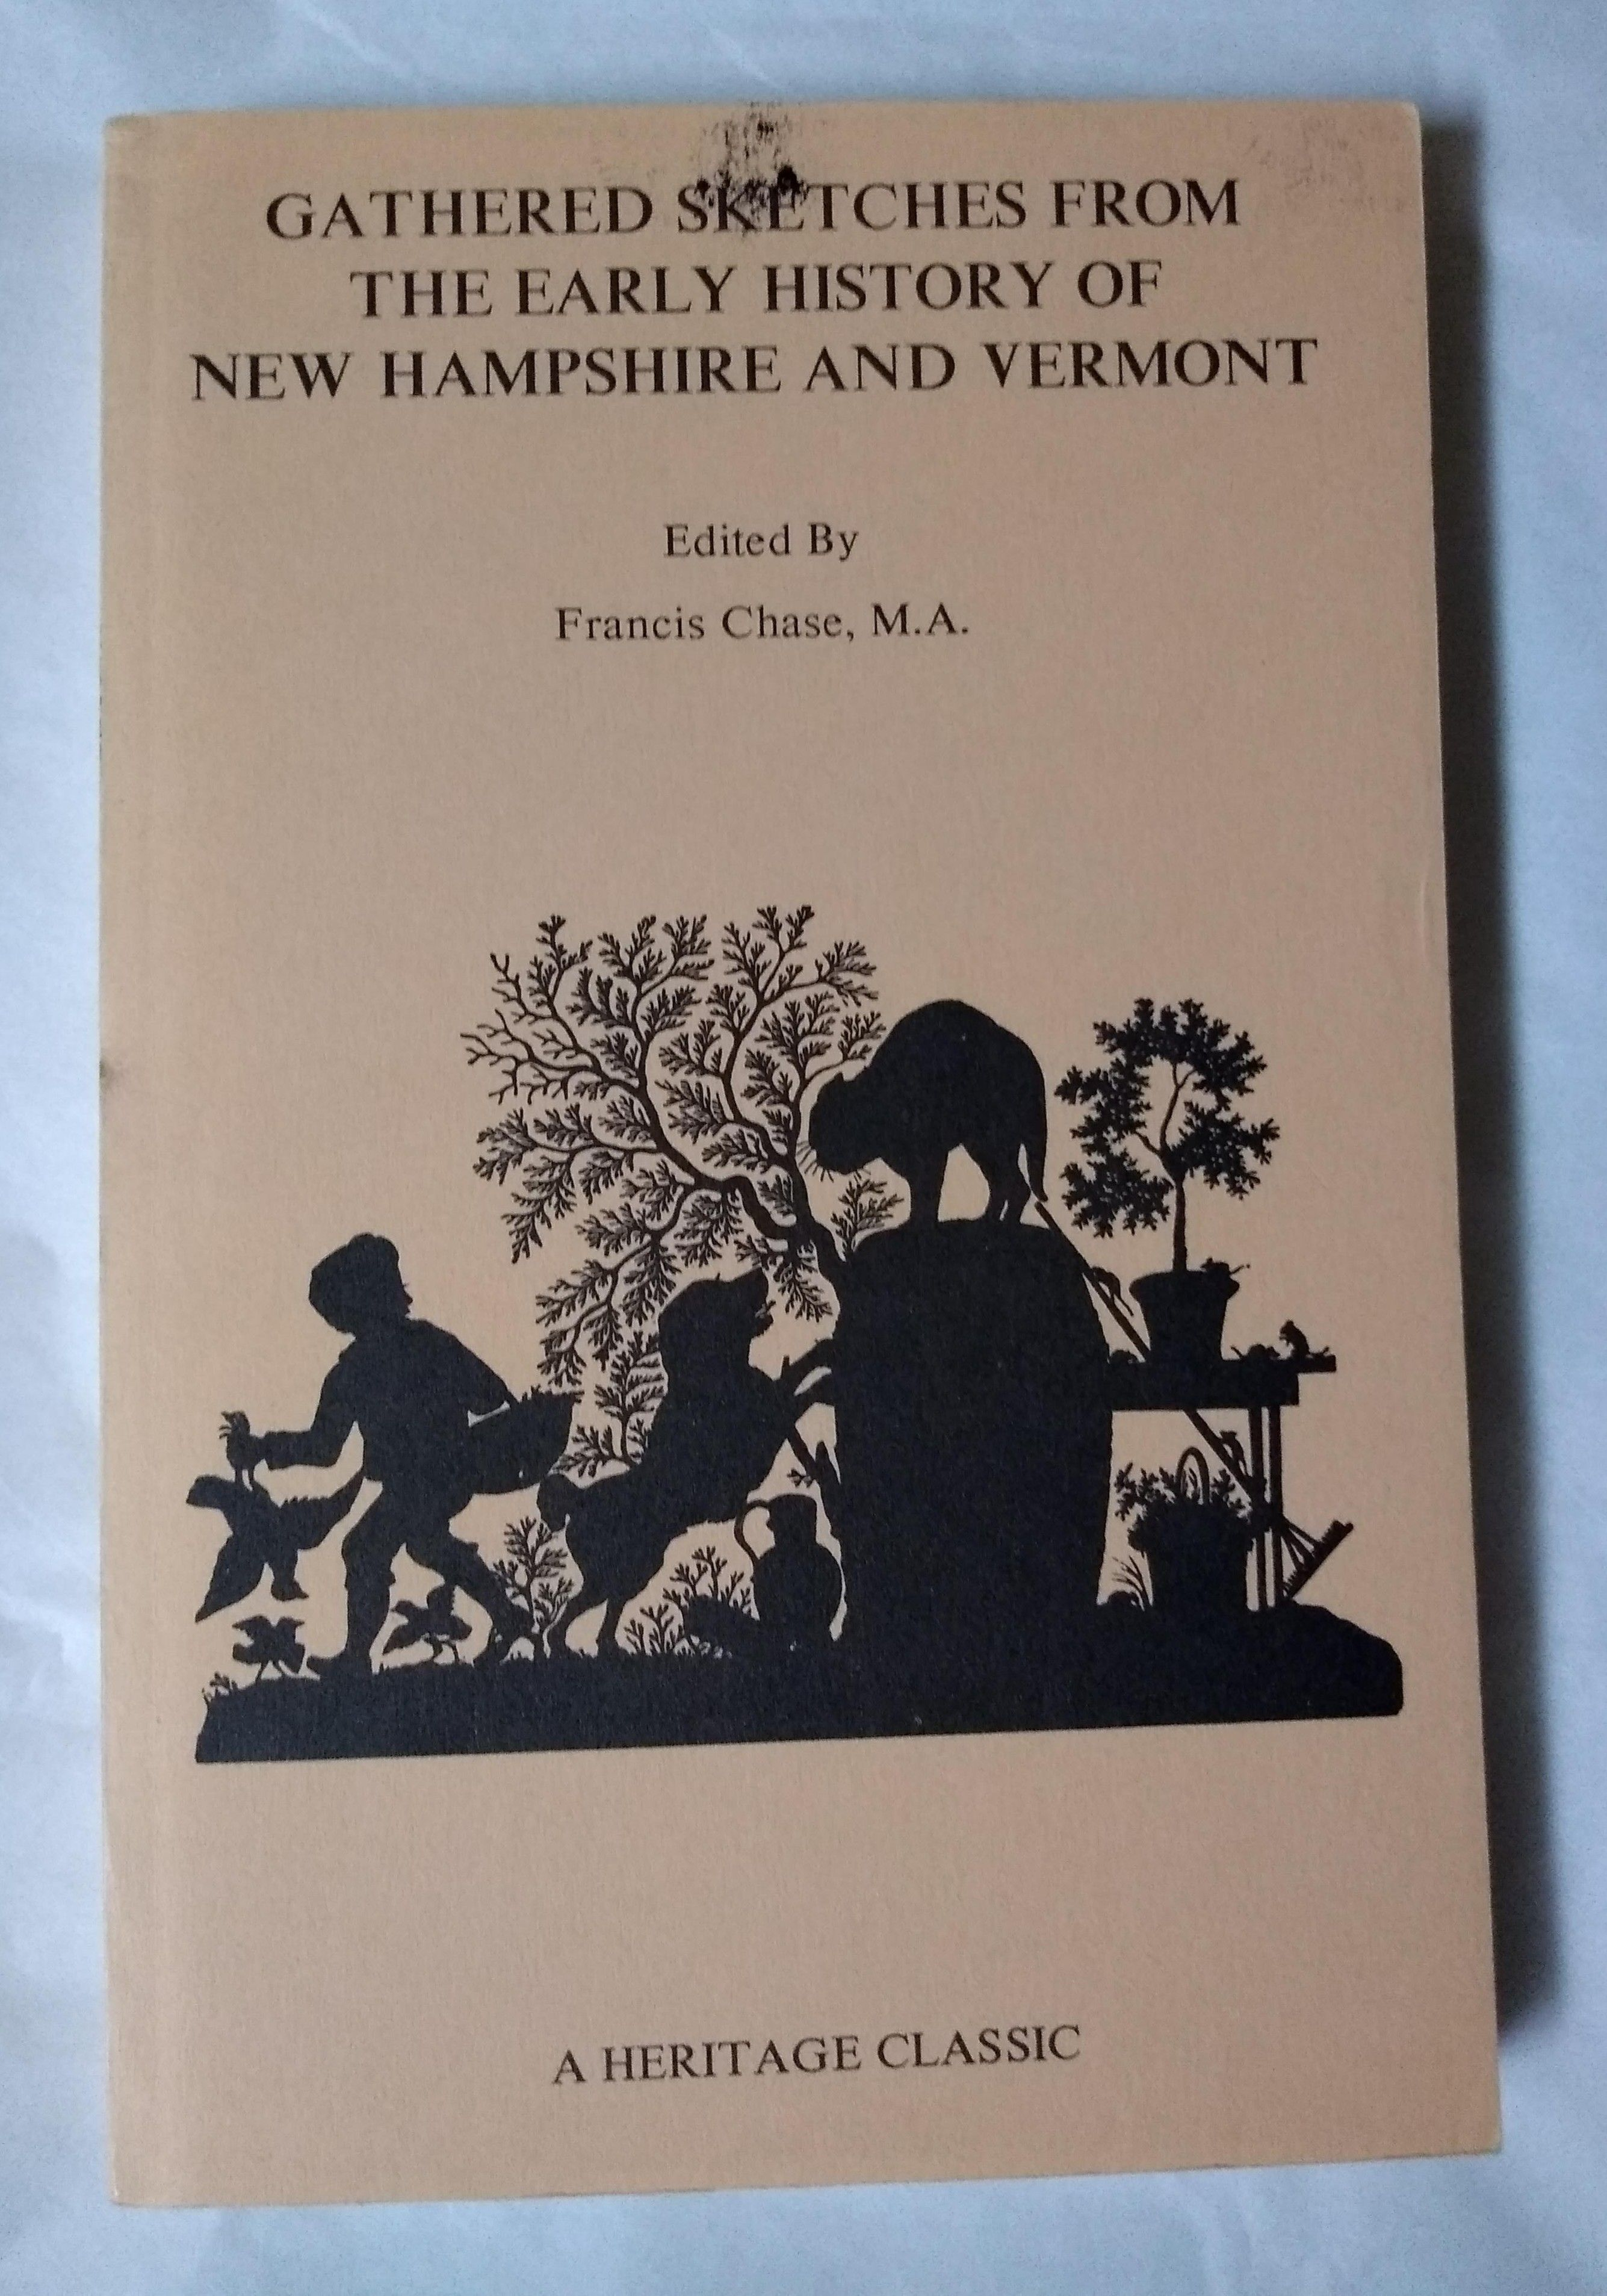 Gathered Sketches from the Early History of New Hampshire & Vermont